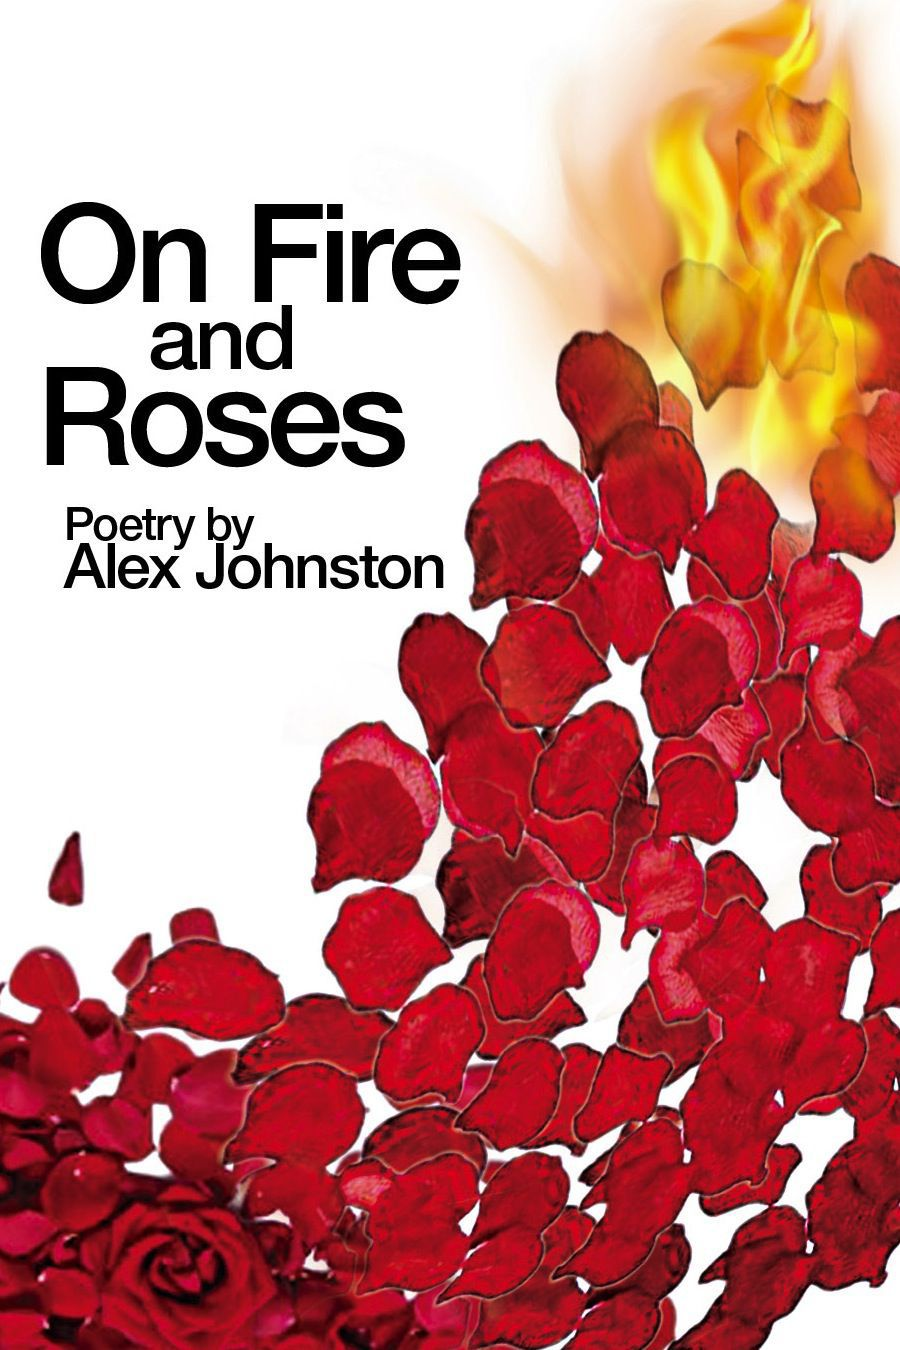 On Fire and Roses